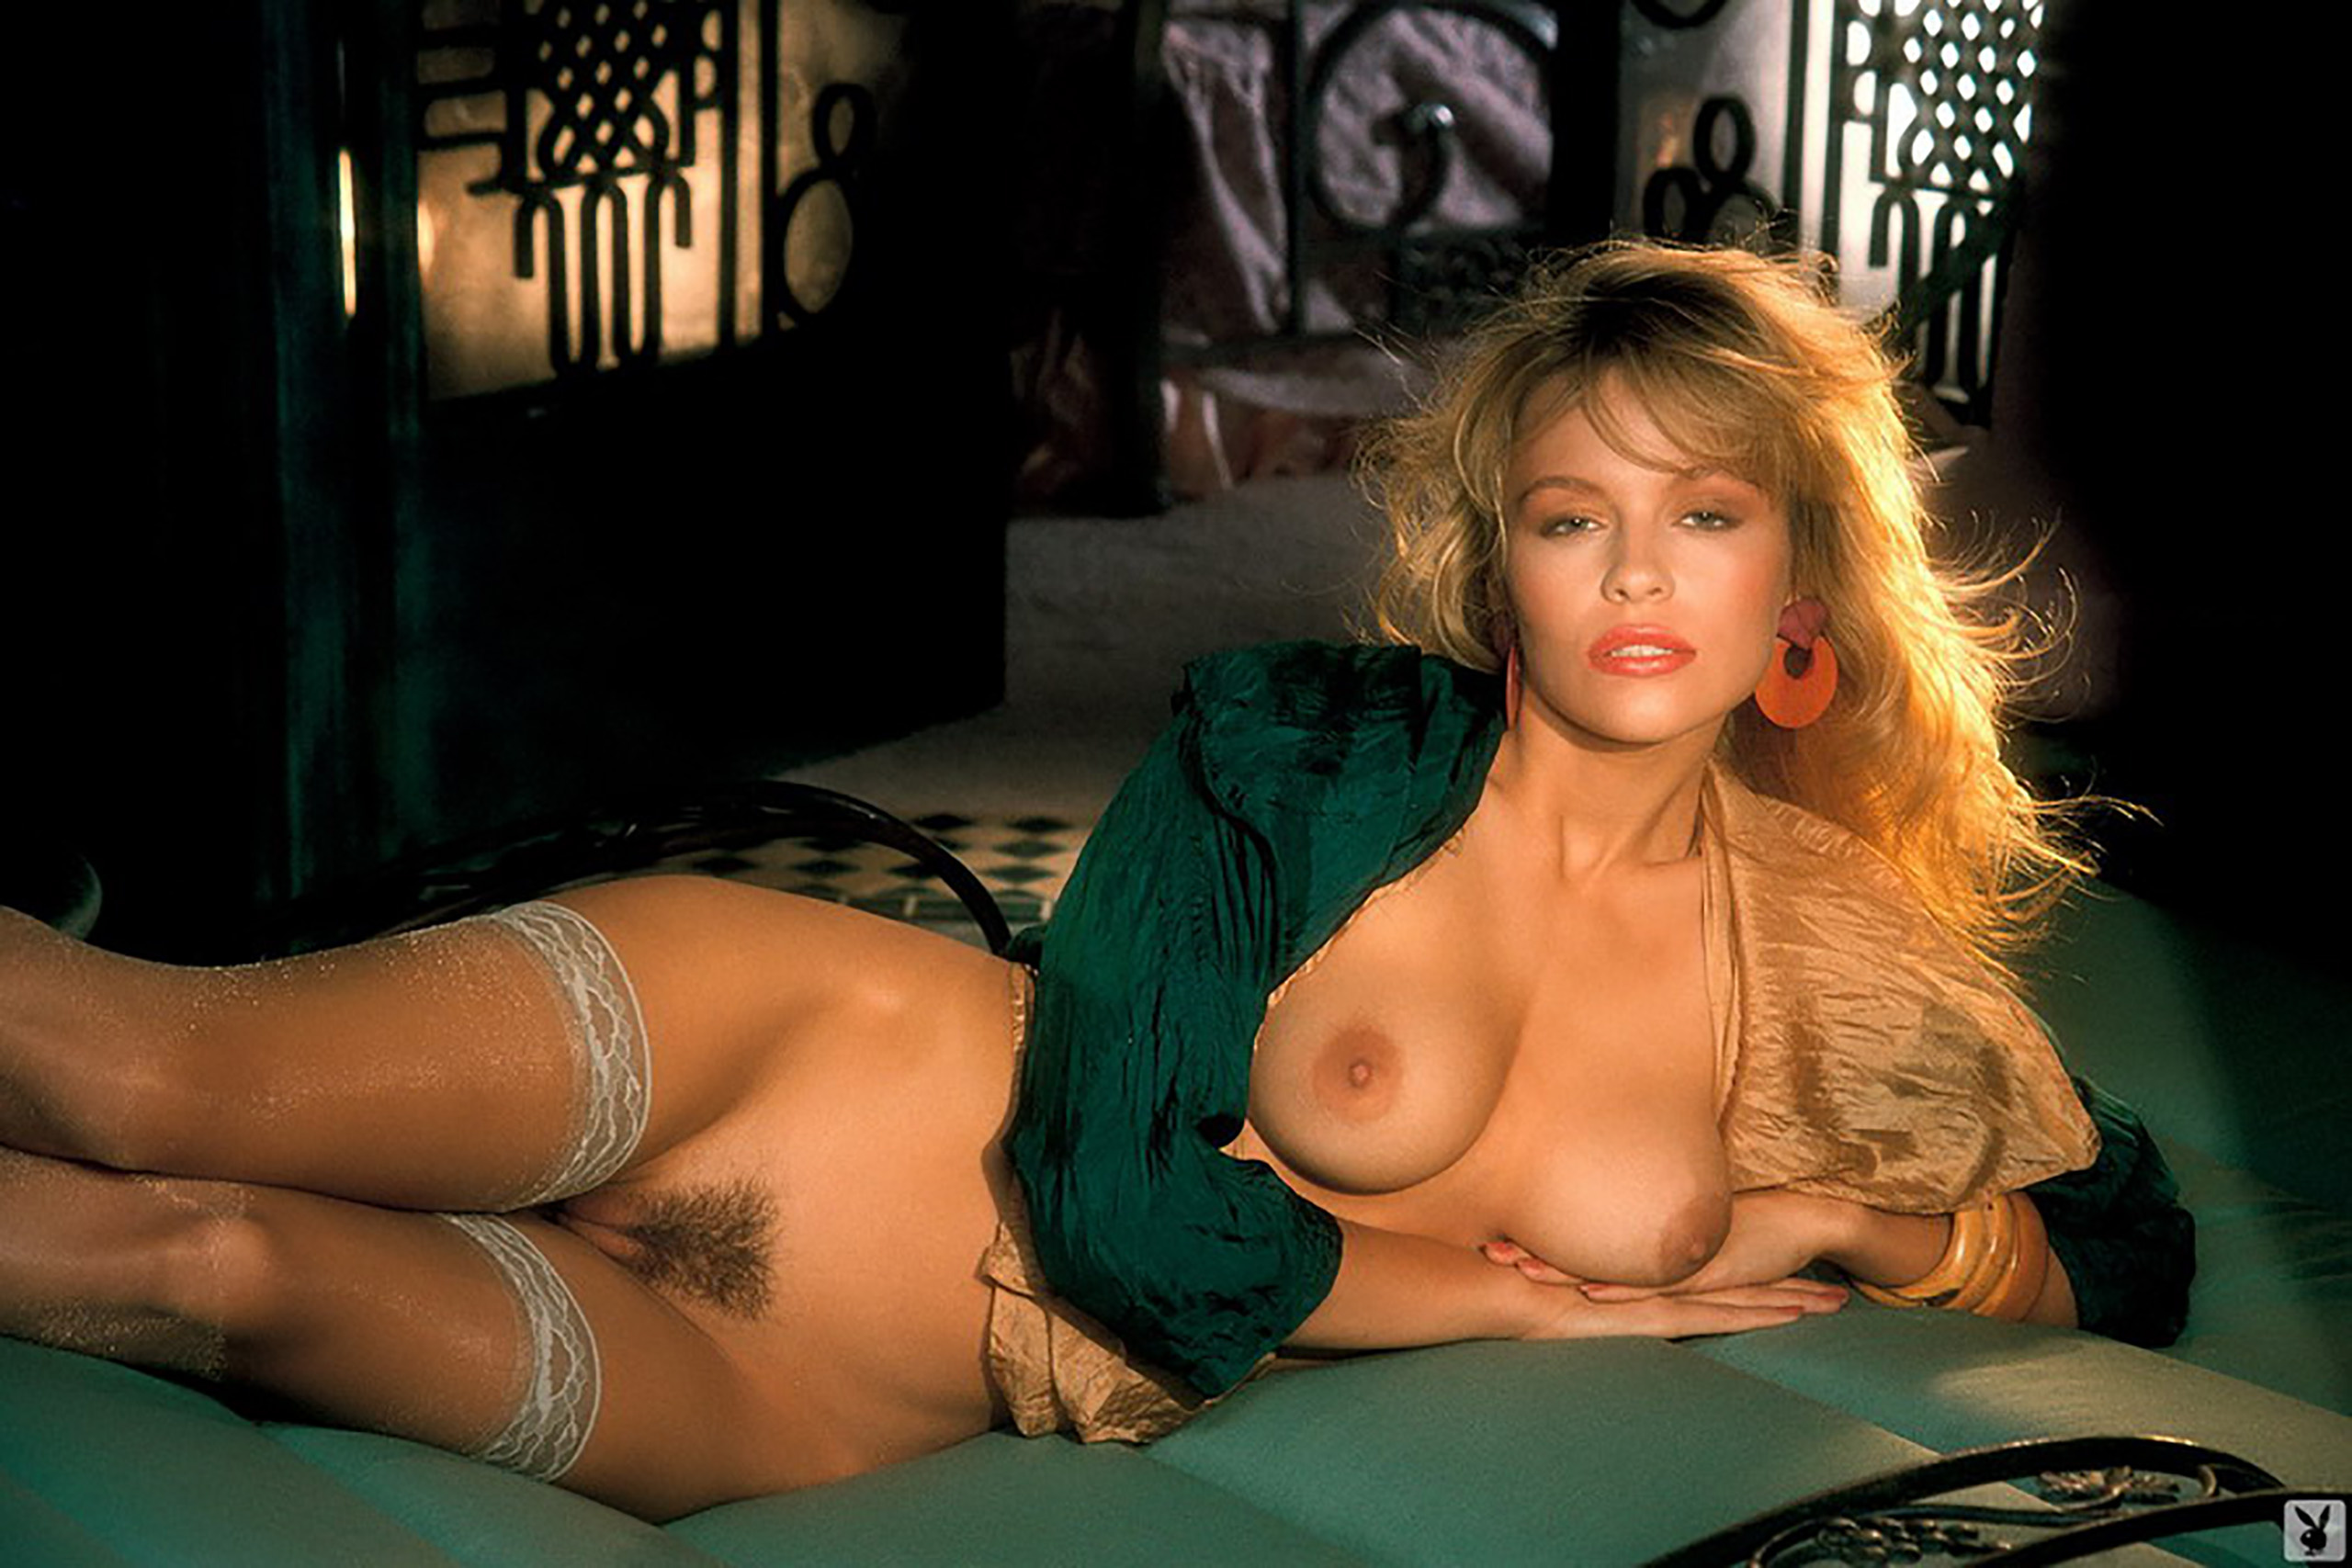 Naked pictures of pamela anderson-4675